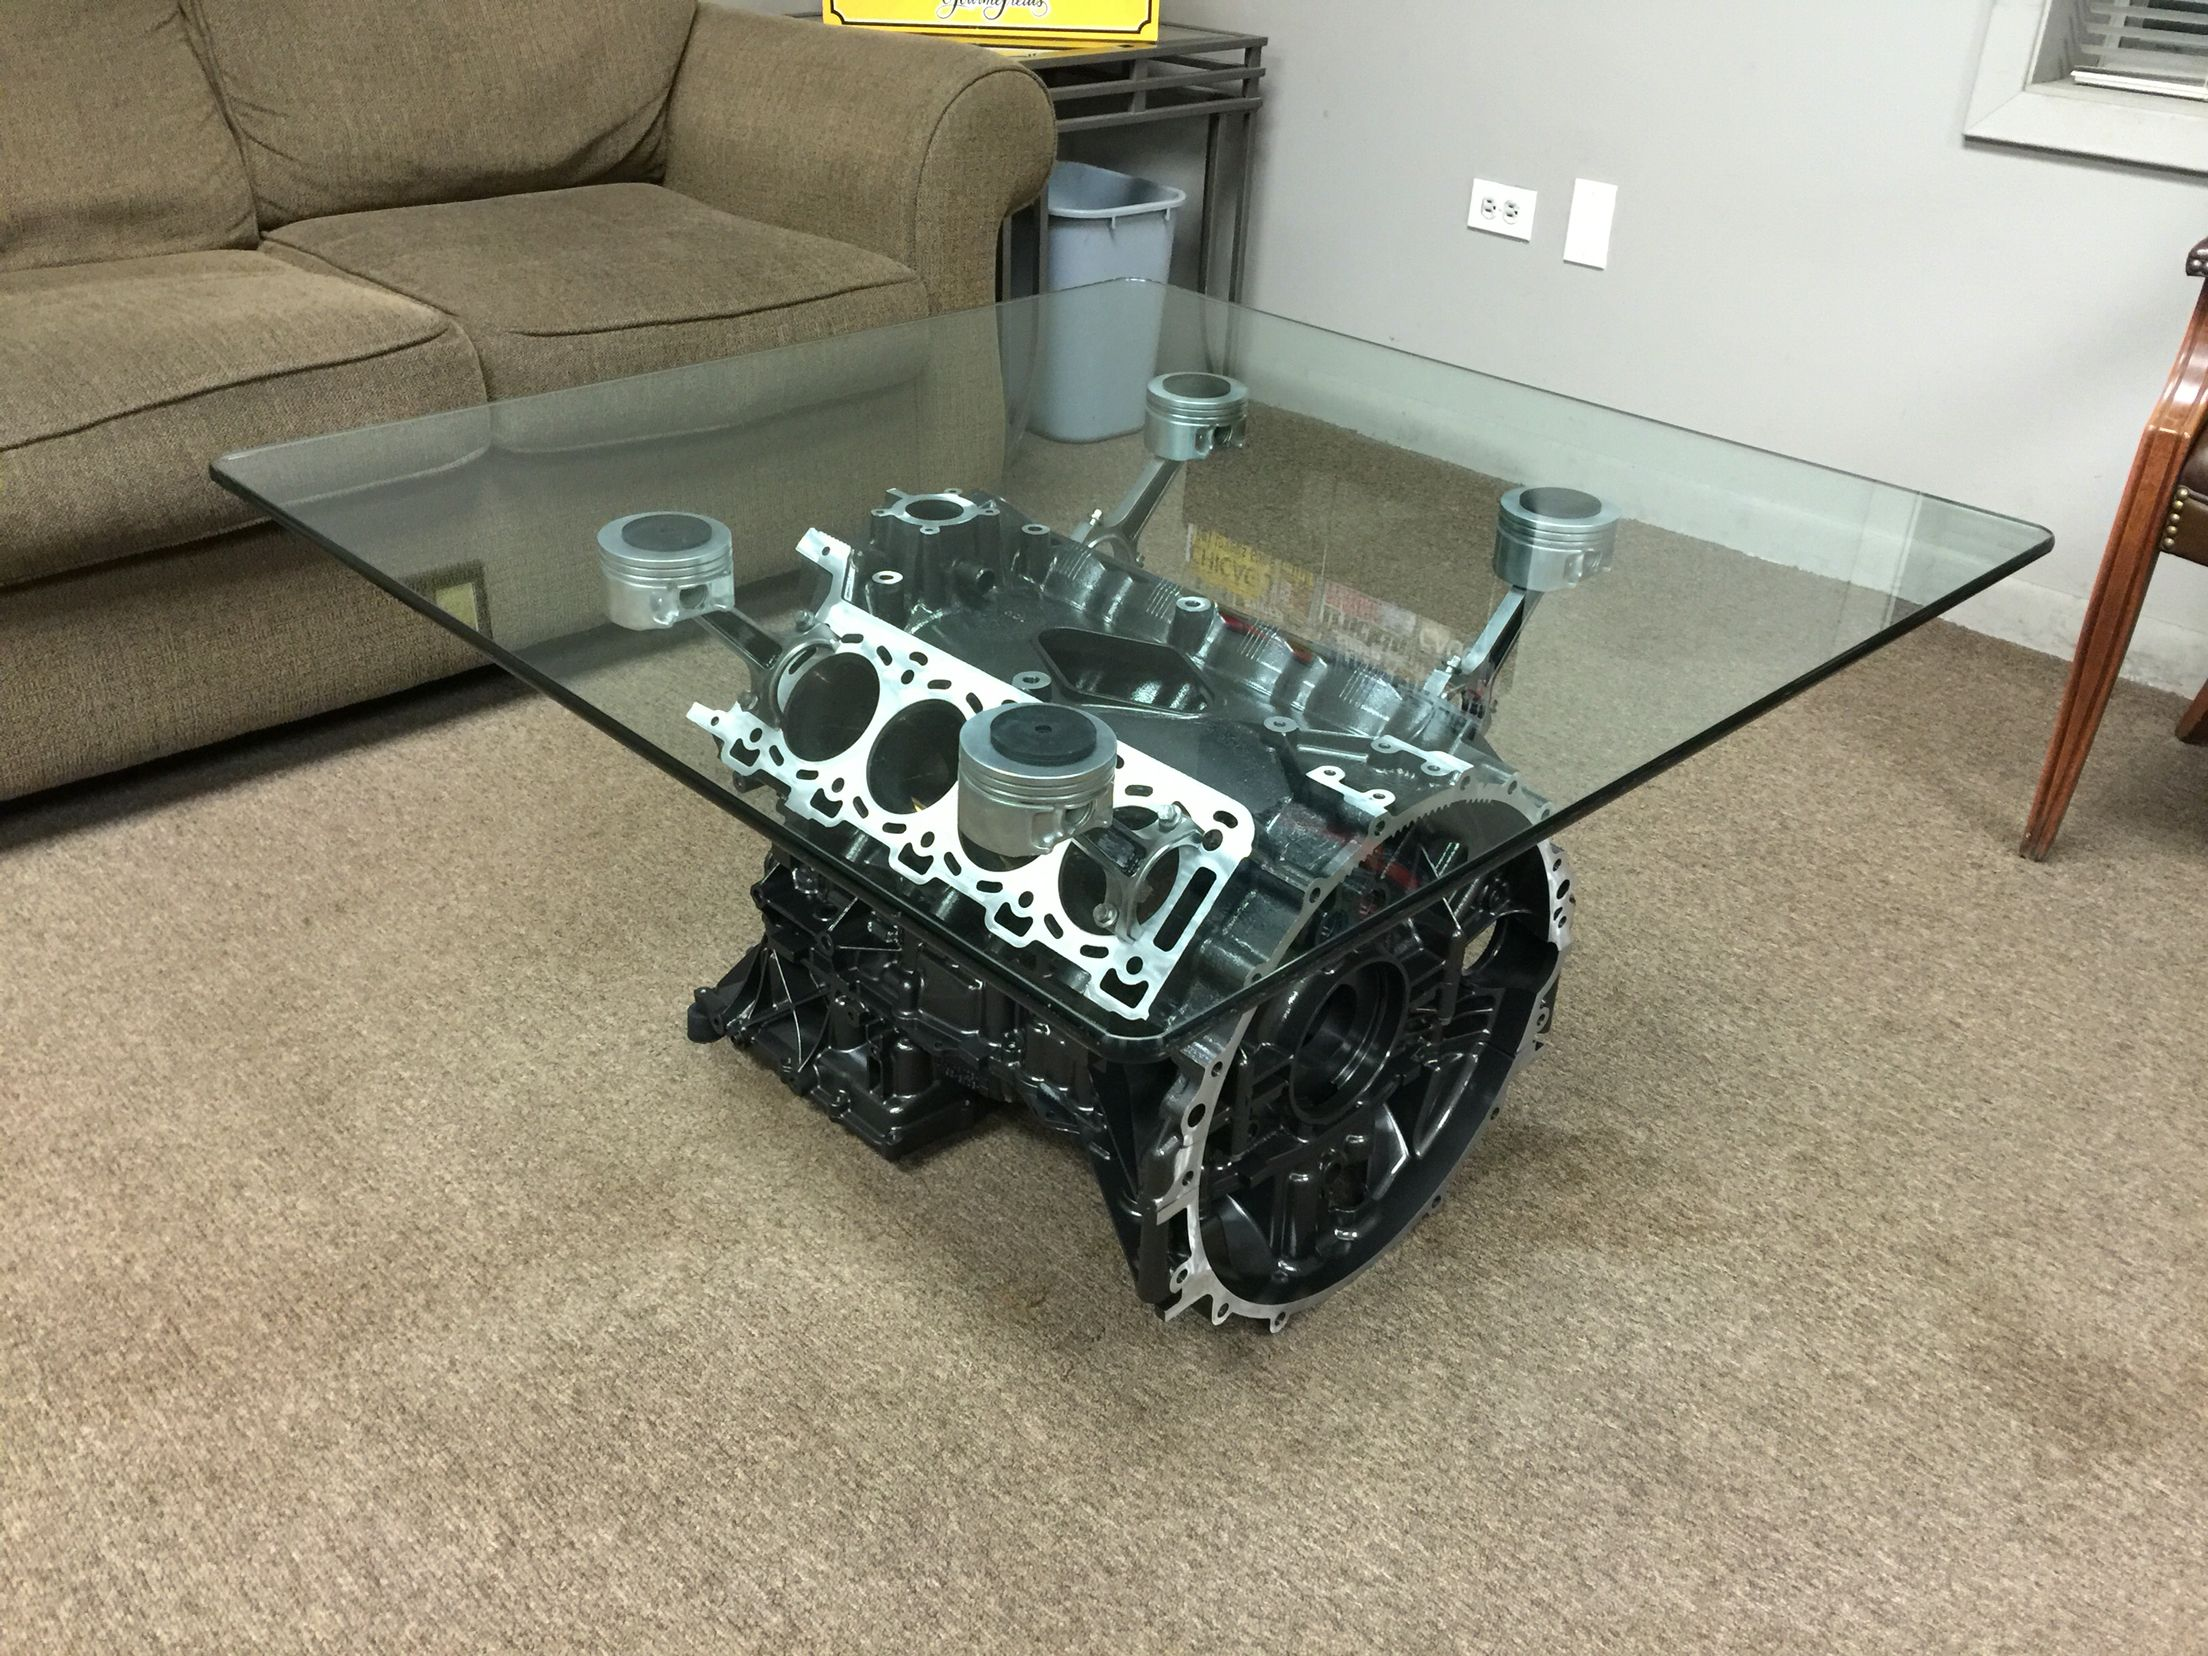 jaguar engine block coffee table my projects. Black Bedroom Furniture Sets. Home Design Ideas